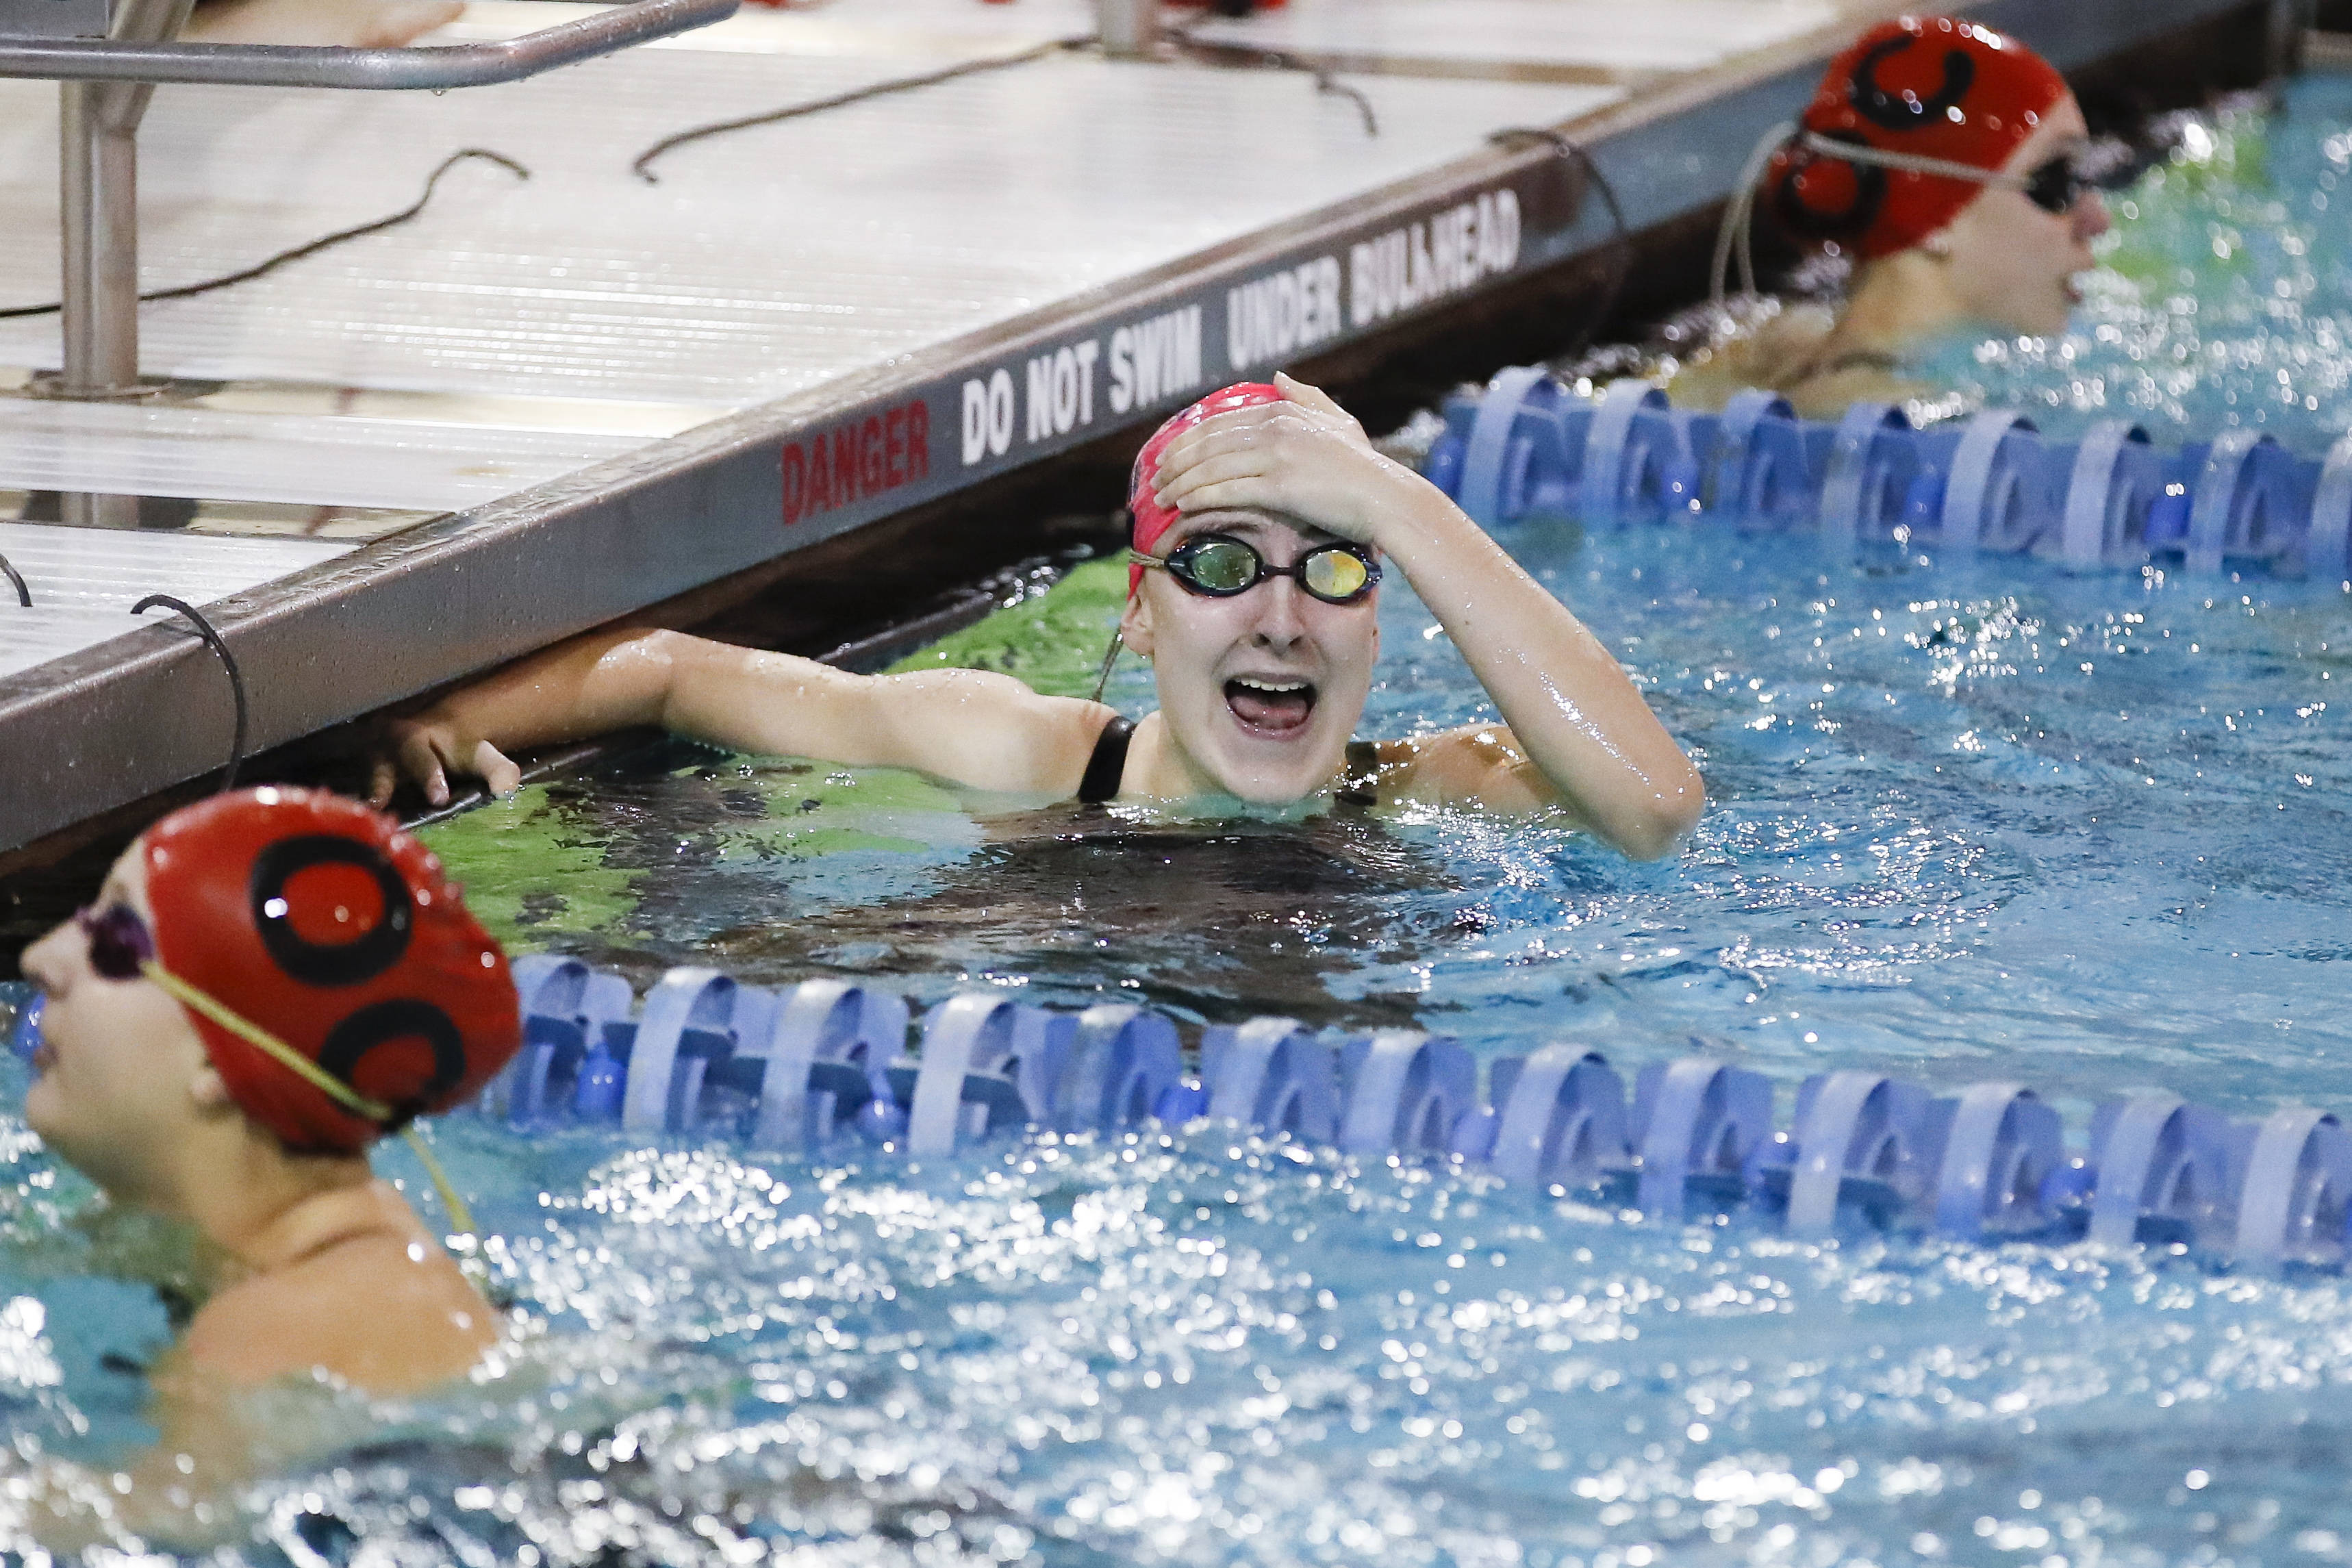 1dfdb1a9c2efd2b4da28_8f9846120be0055f2ae1_SwimChamps_Girls-2.jpg